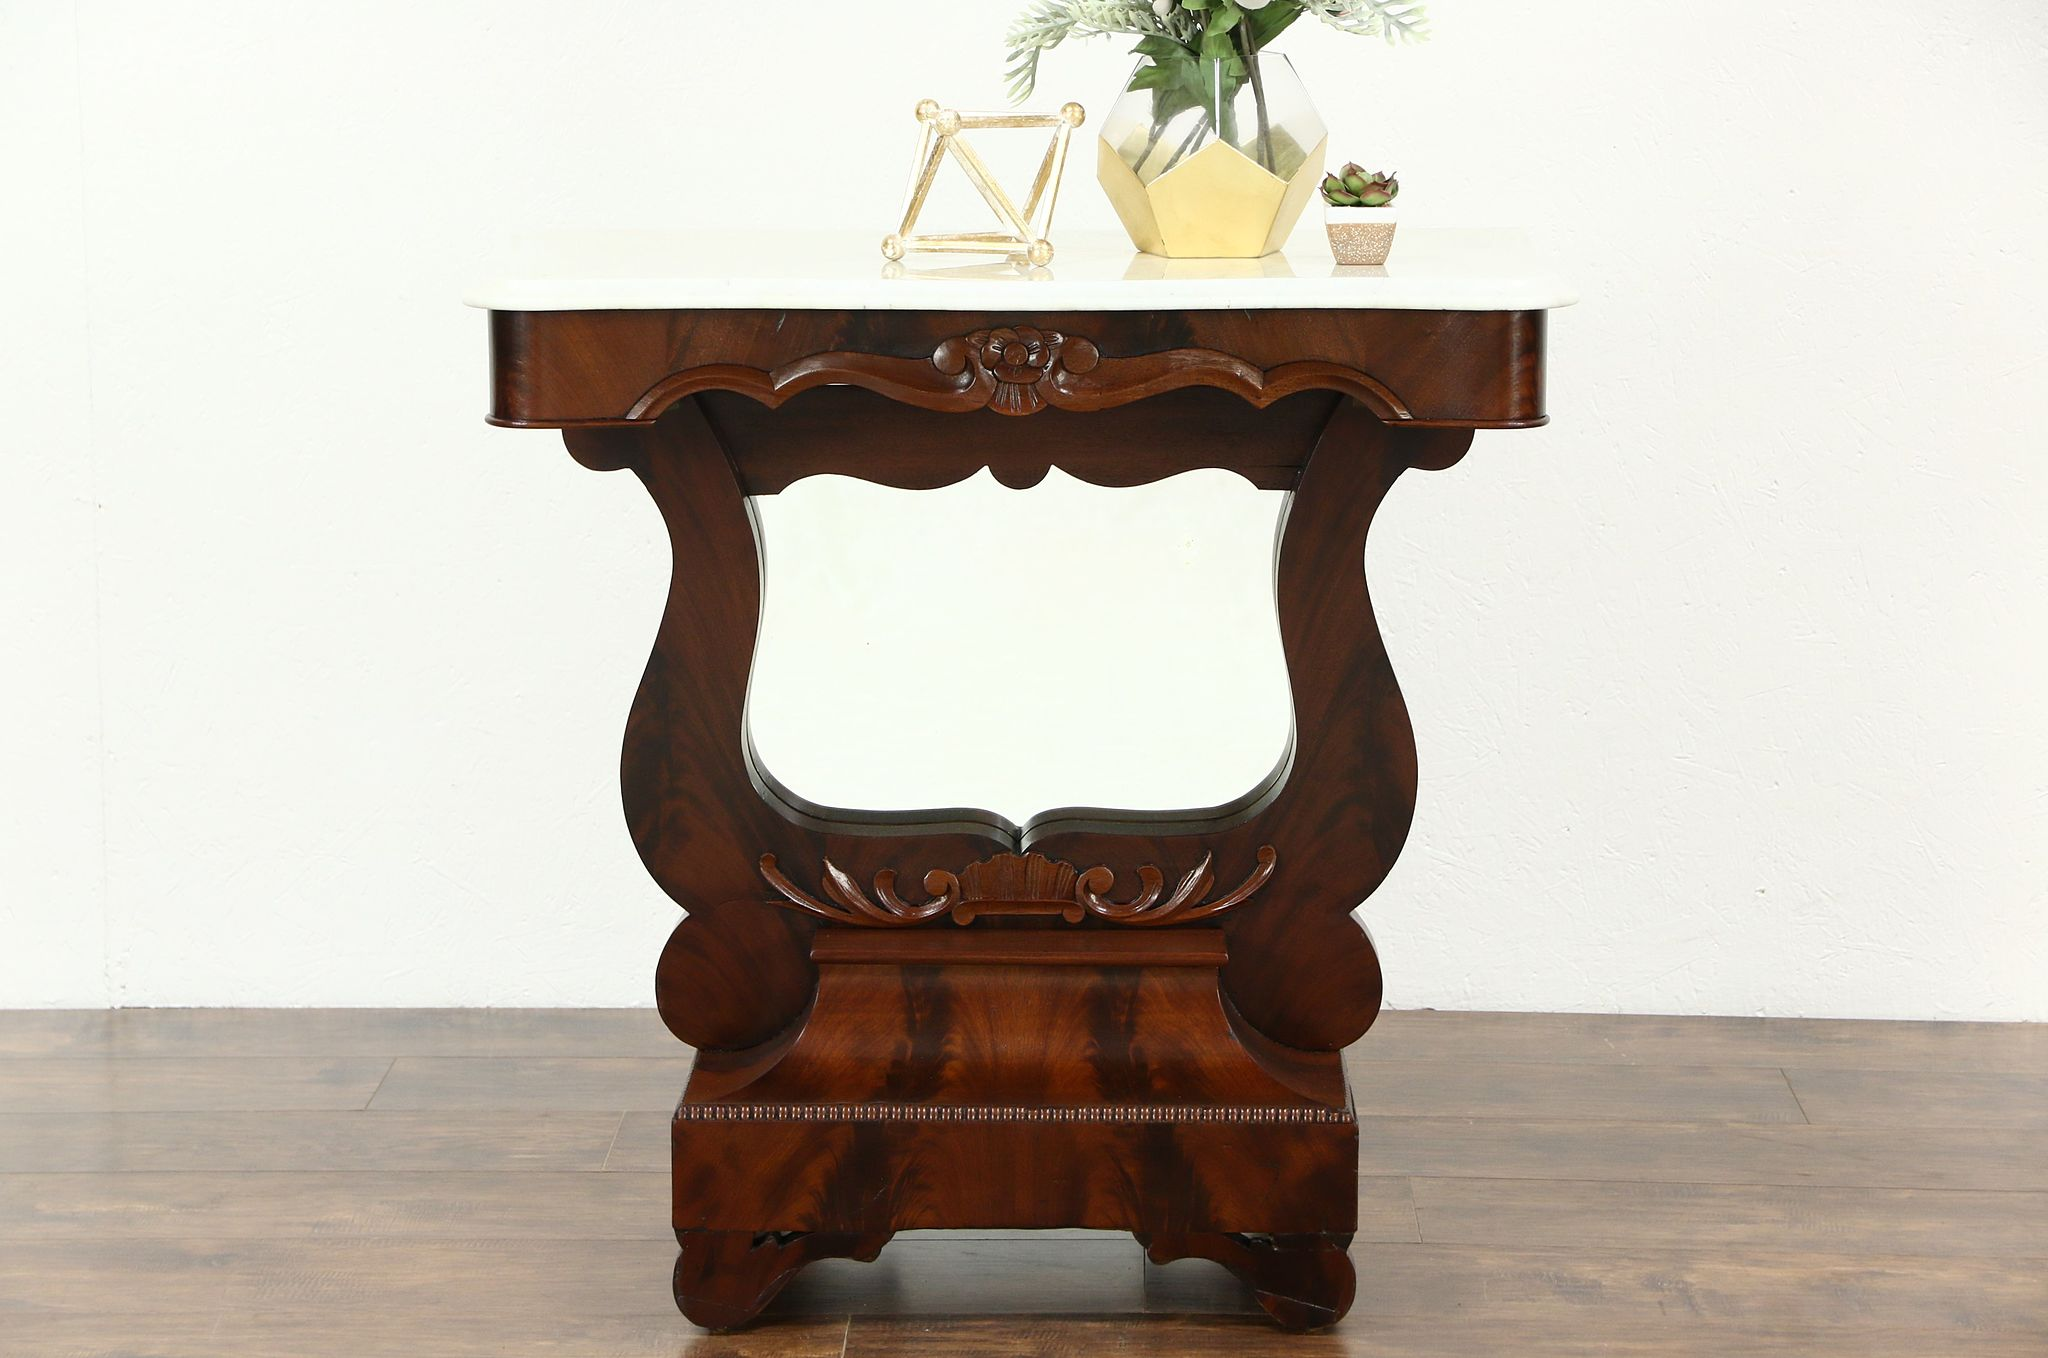 Delicieux Empire 1840 Antique Hall Console Table Or Petticoat Mirror, Mahogany And  Marble